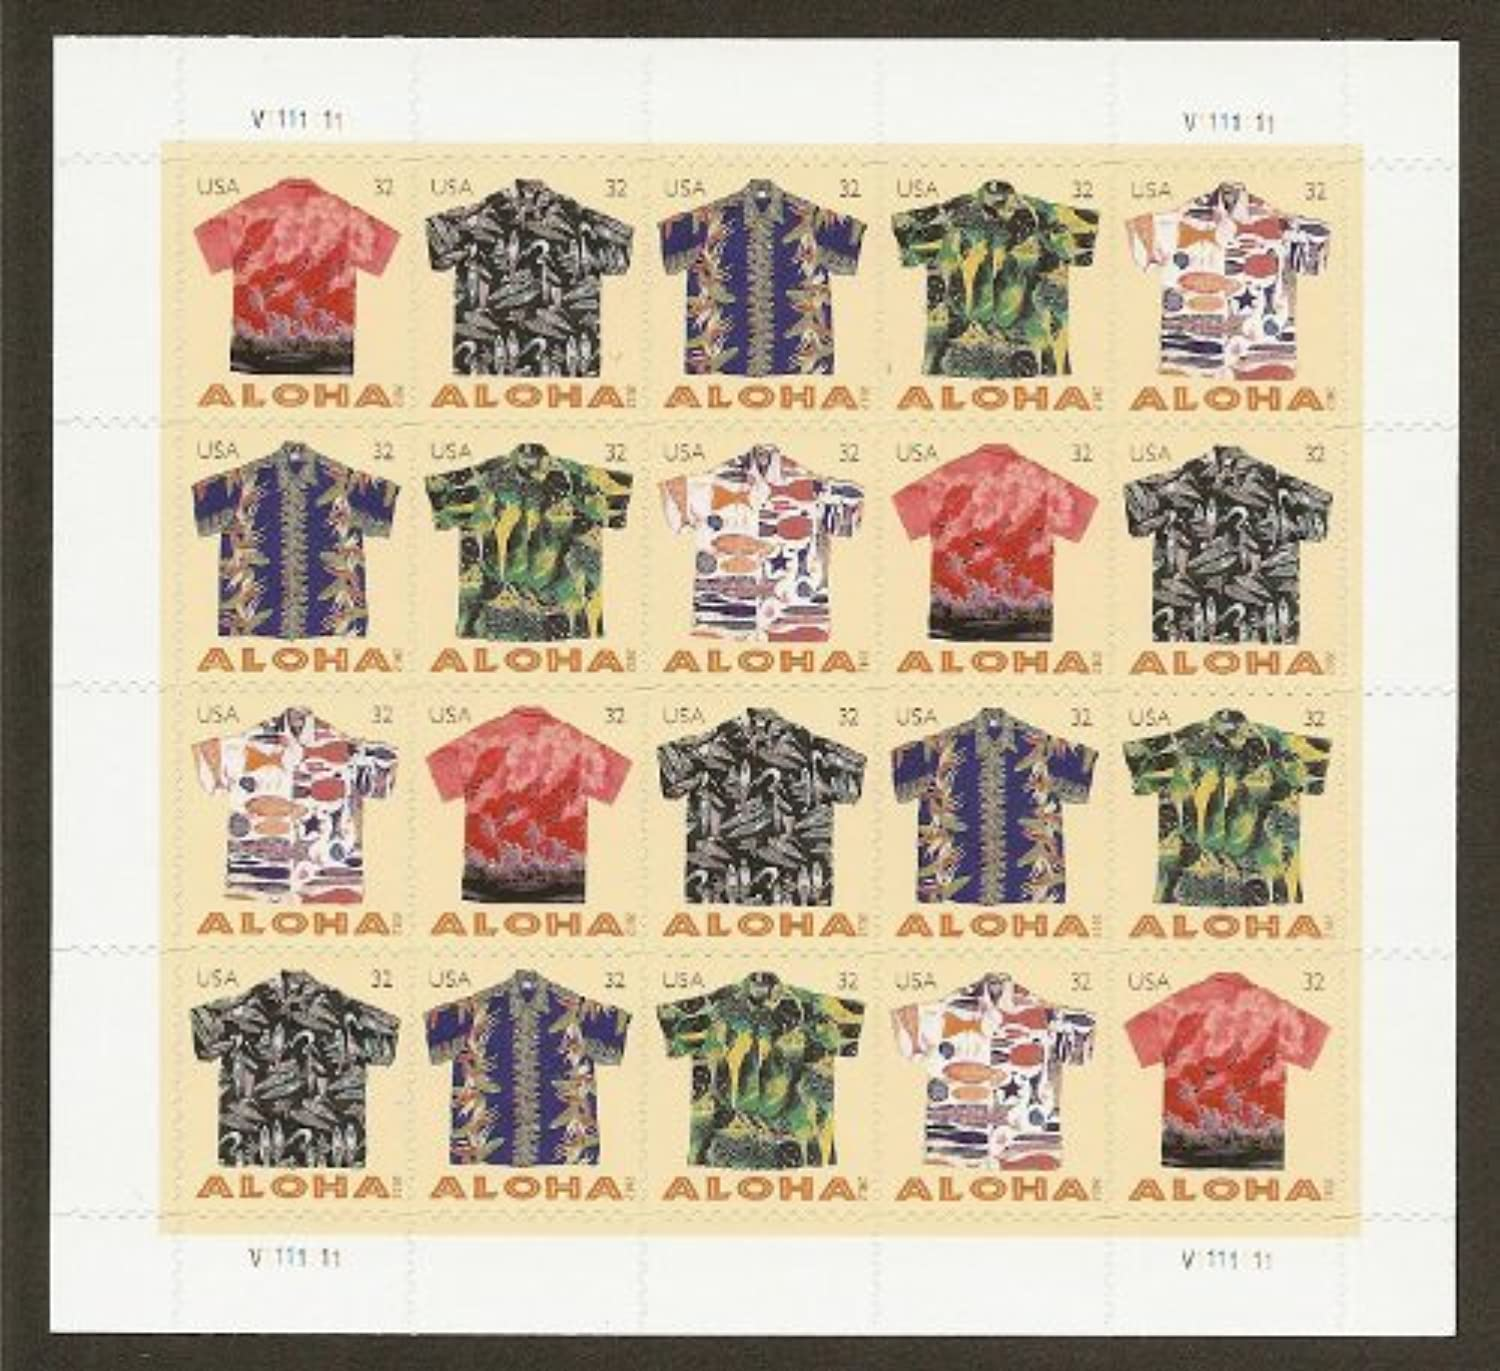 Aloha Shirts Sheet of 20 Mint NH US Postage 32c Stamps 4592-4596 by USPS